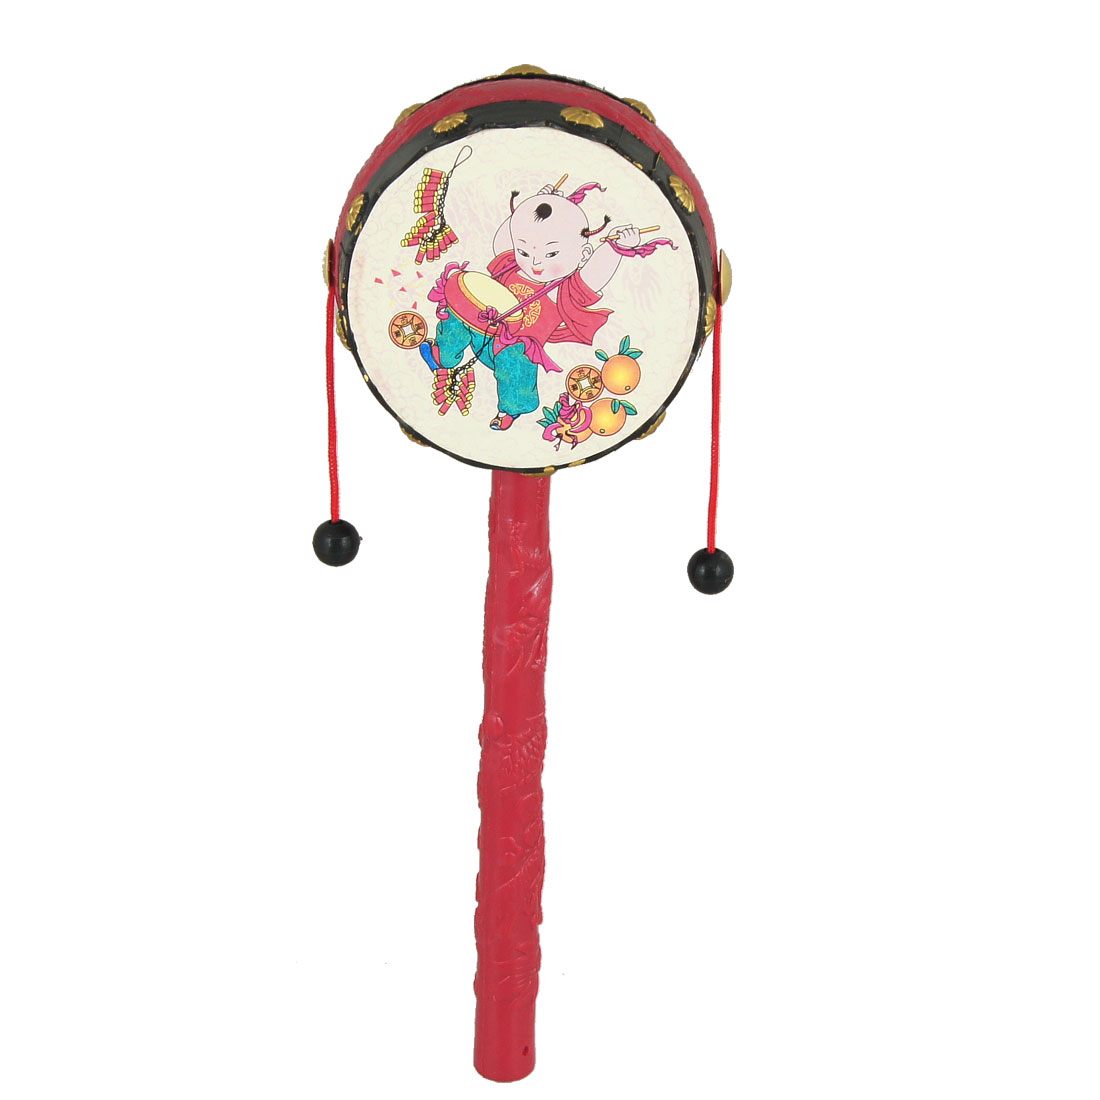 Toddlers Red Plastic Hand Shake Music Instrument Toy Rattle Drum